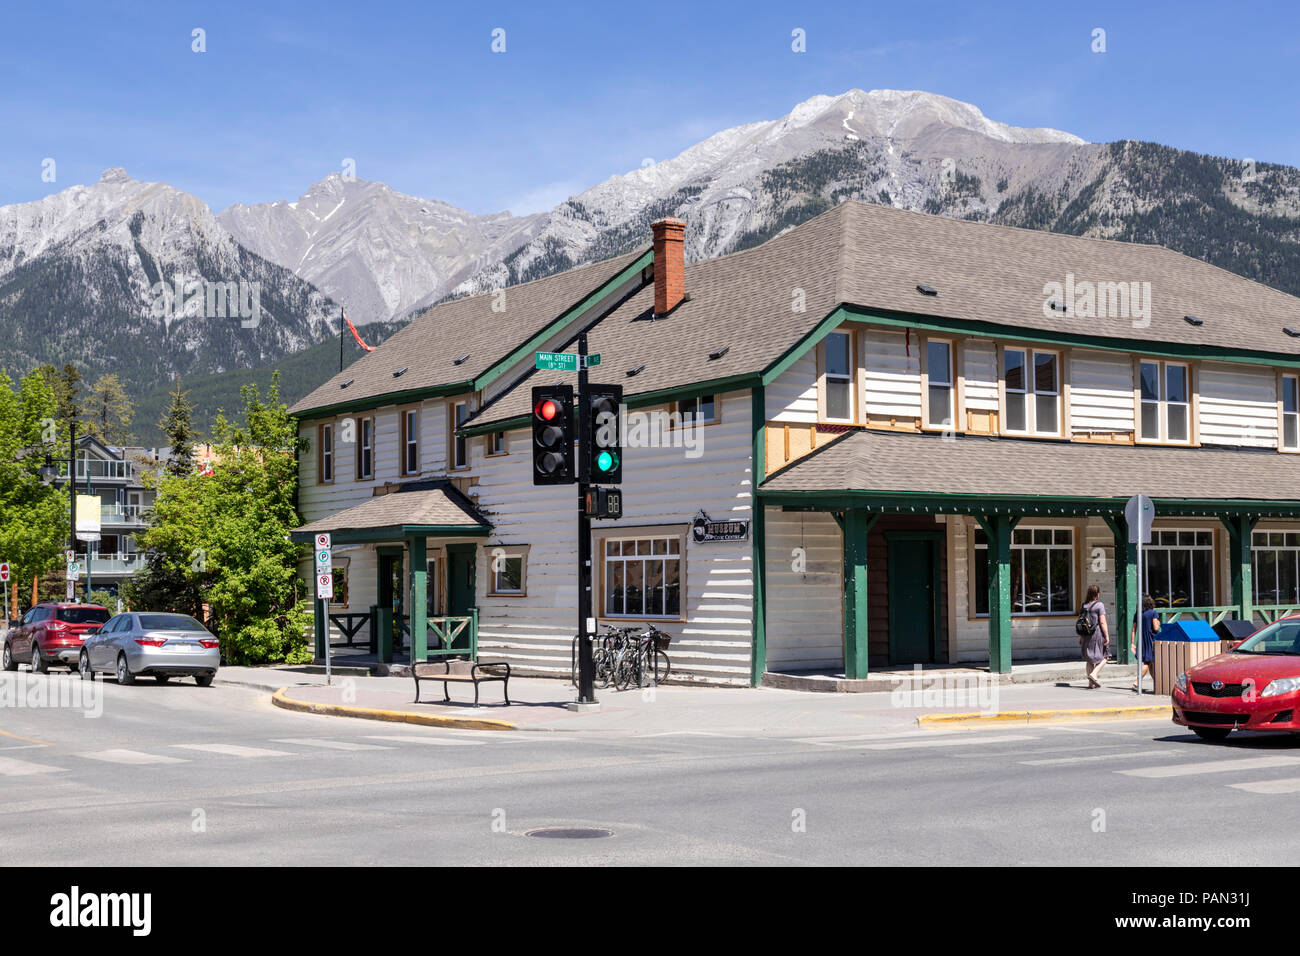 The museum and civic centre in the town of Canmore on the western edge of the Rocky Mountains, Alberta, Canada - Stock Image